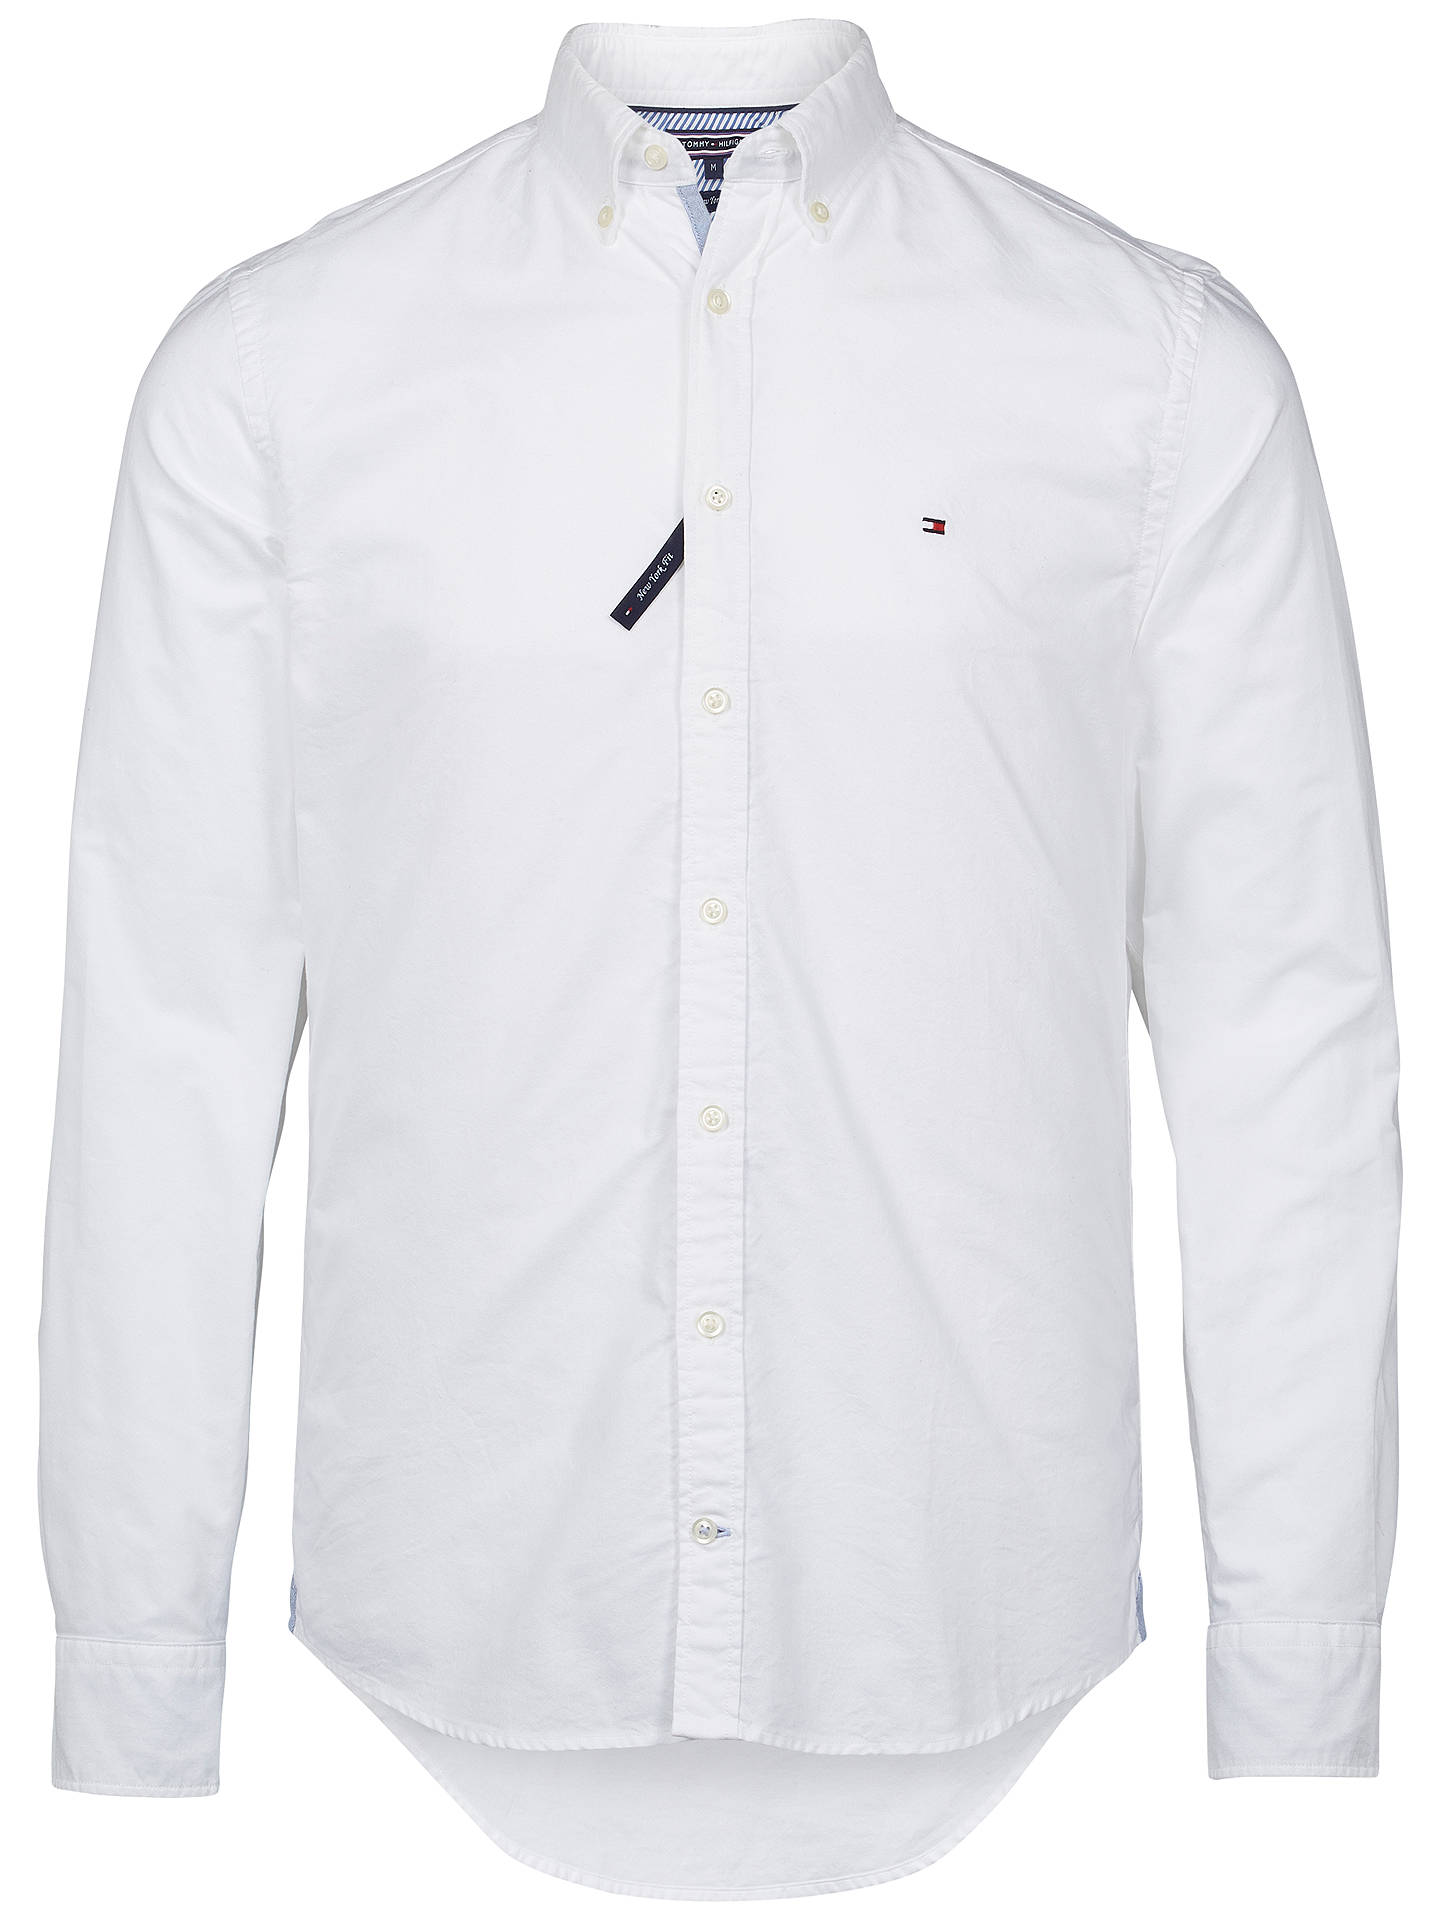 dd94f995 Buy Tommy Hilfiger Ivy Oxford Shirt, White, M Online at johnlewis.com ...